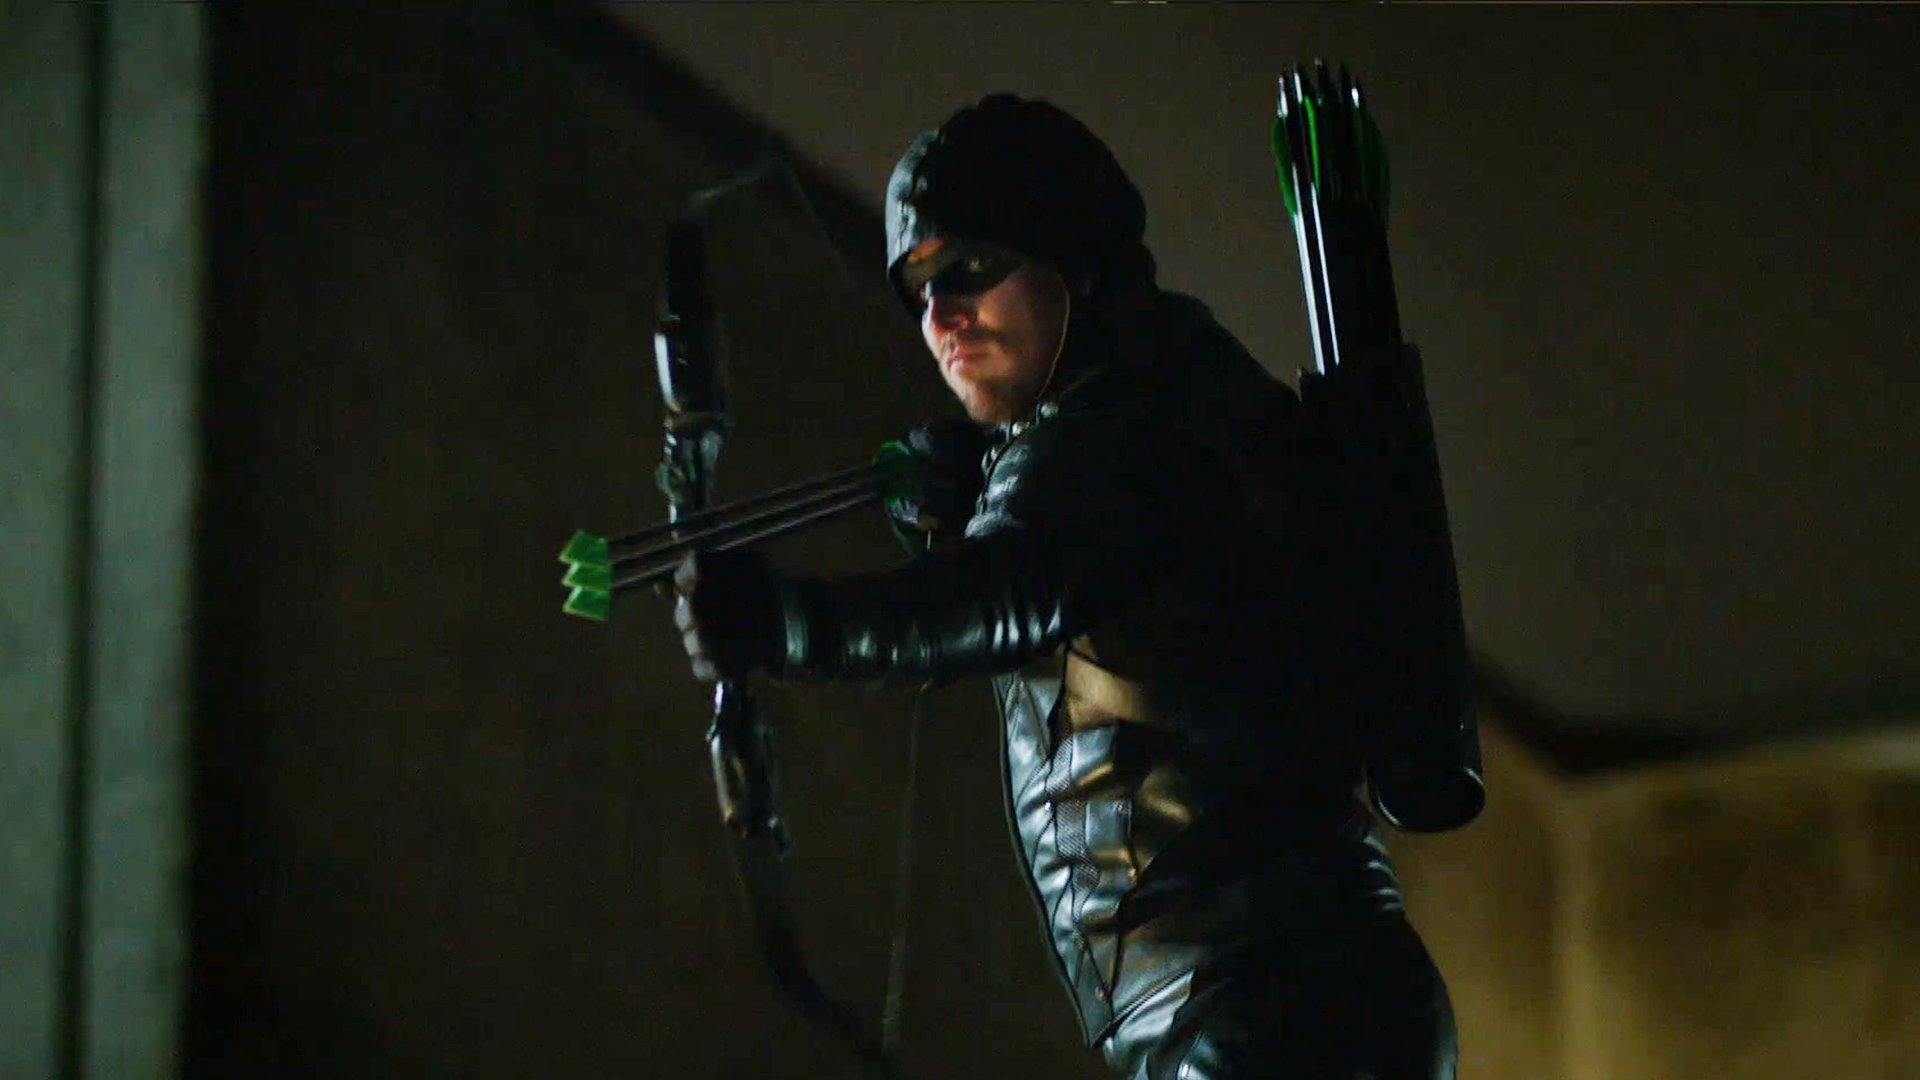 The Dragon is ready to expand his empire on tomorrow's new episode. Catch up first: https://t.co/qJdXdu82yW #Arrow https://t.co/nZ1IlqOQl2